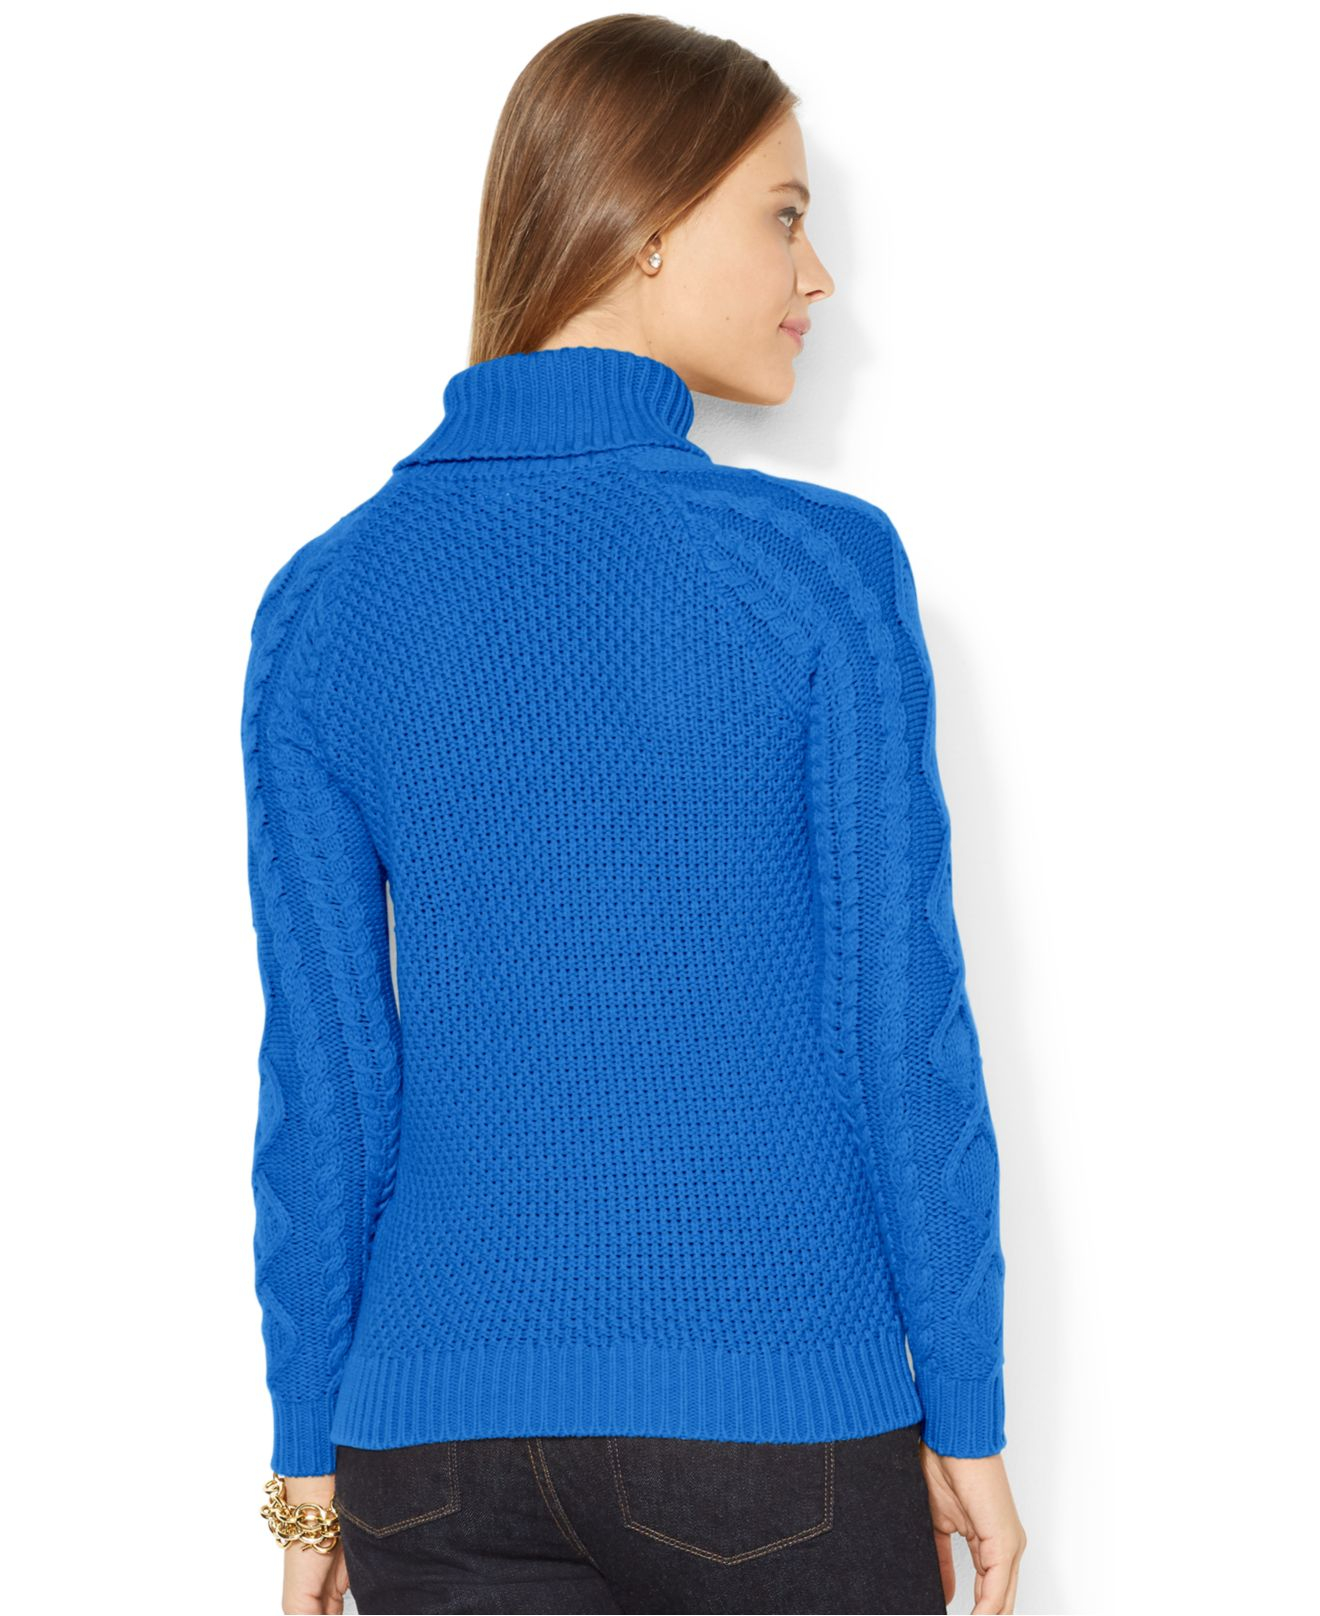 Lauren by ralph lauren Cable-Knit Turtleneck Sweater in Blue | Lyst